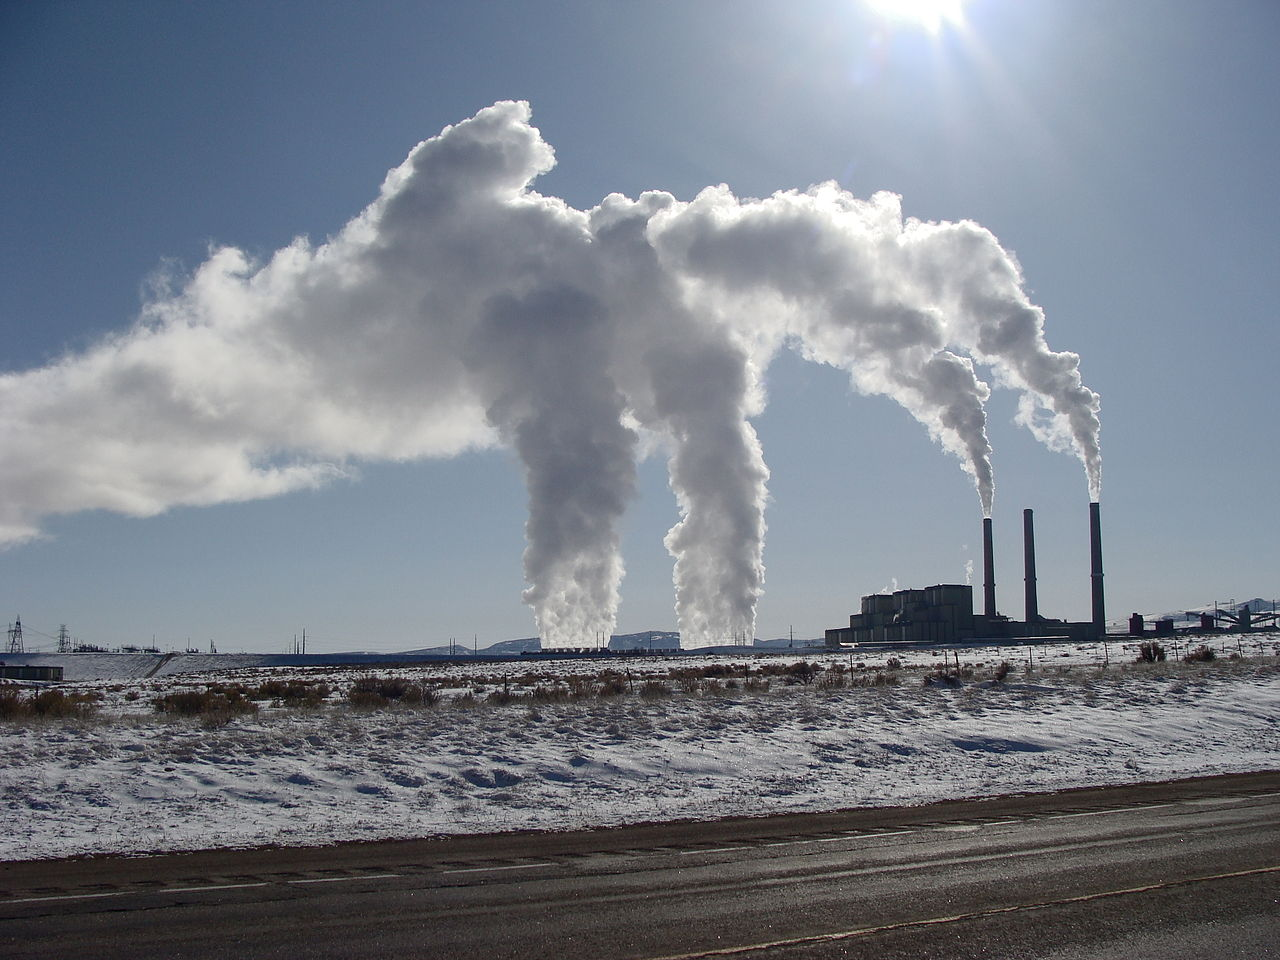 Coal power plant (Photo: Flickr user Jimmy Thomas CC 2.0)